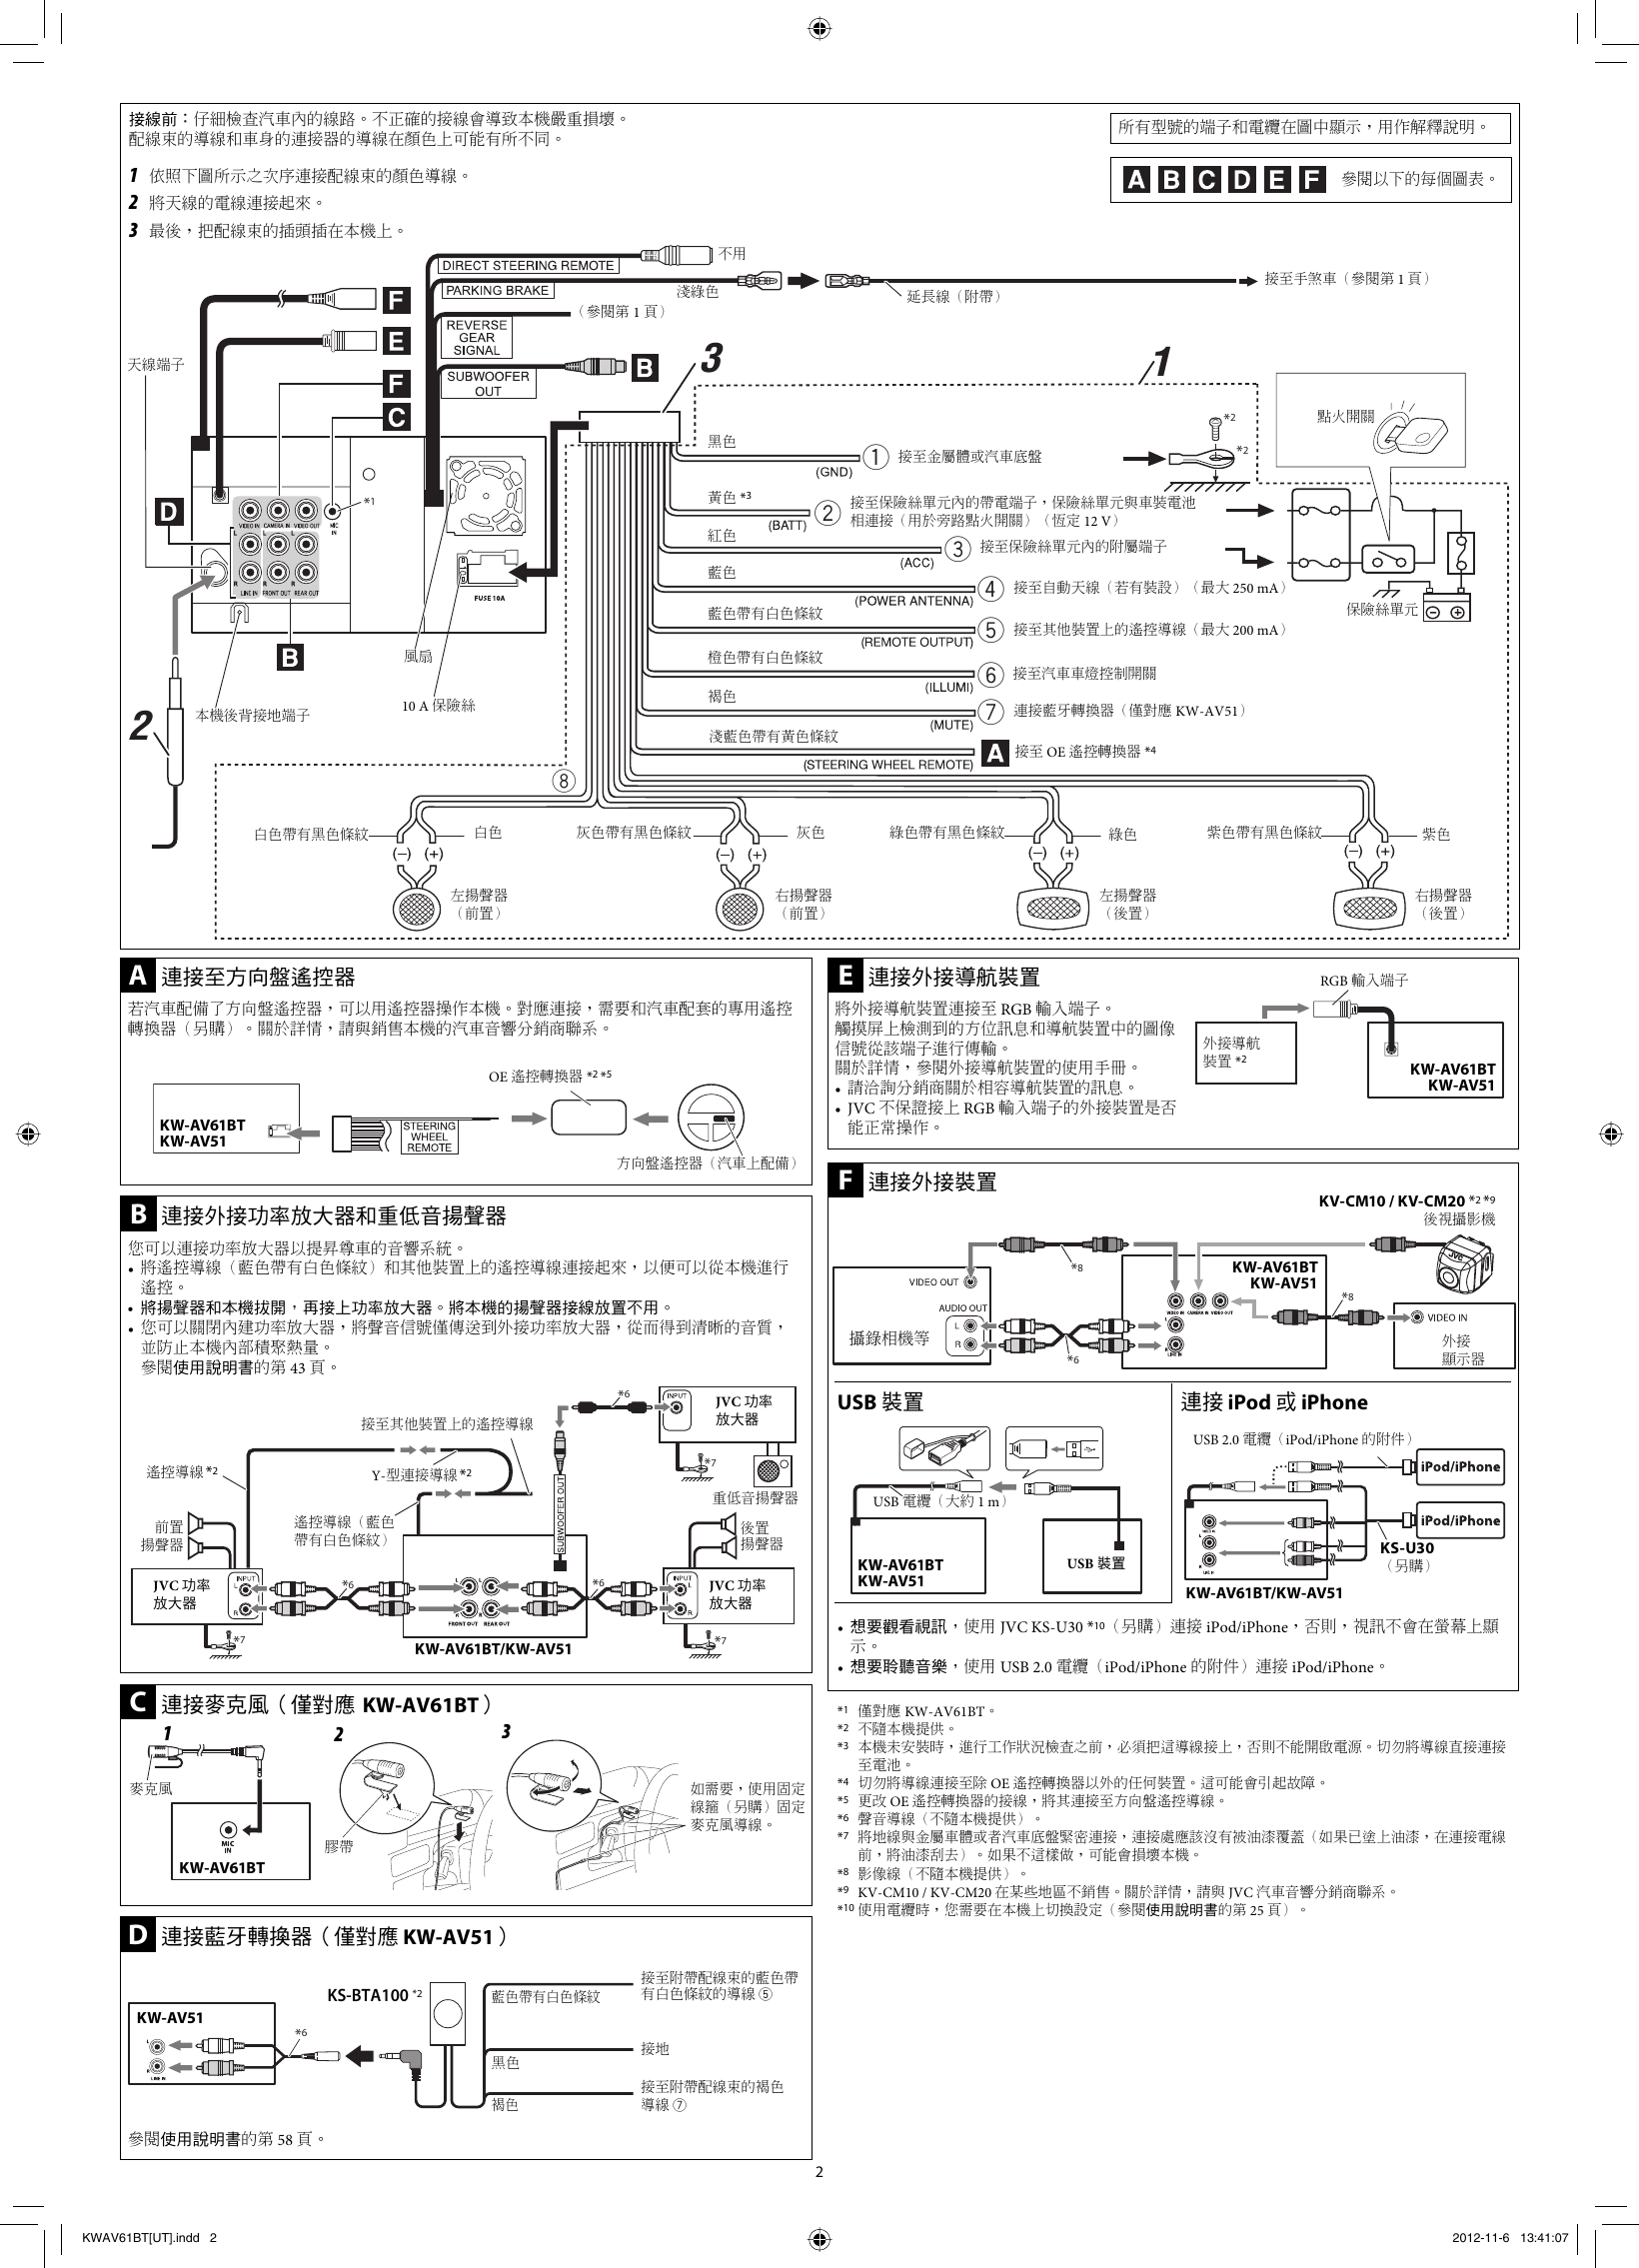 Diagram Kw V21bt Wiring Diagram Full Version Hd Quality Wiring Diagram Legalschematics Lionsgenova It